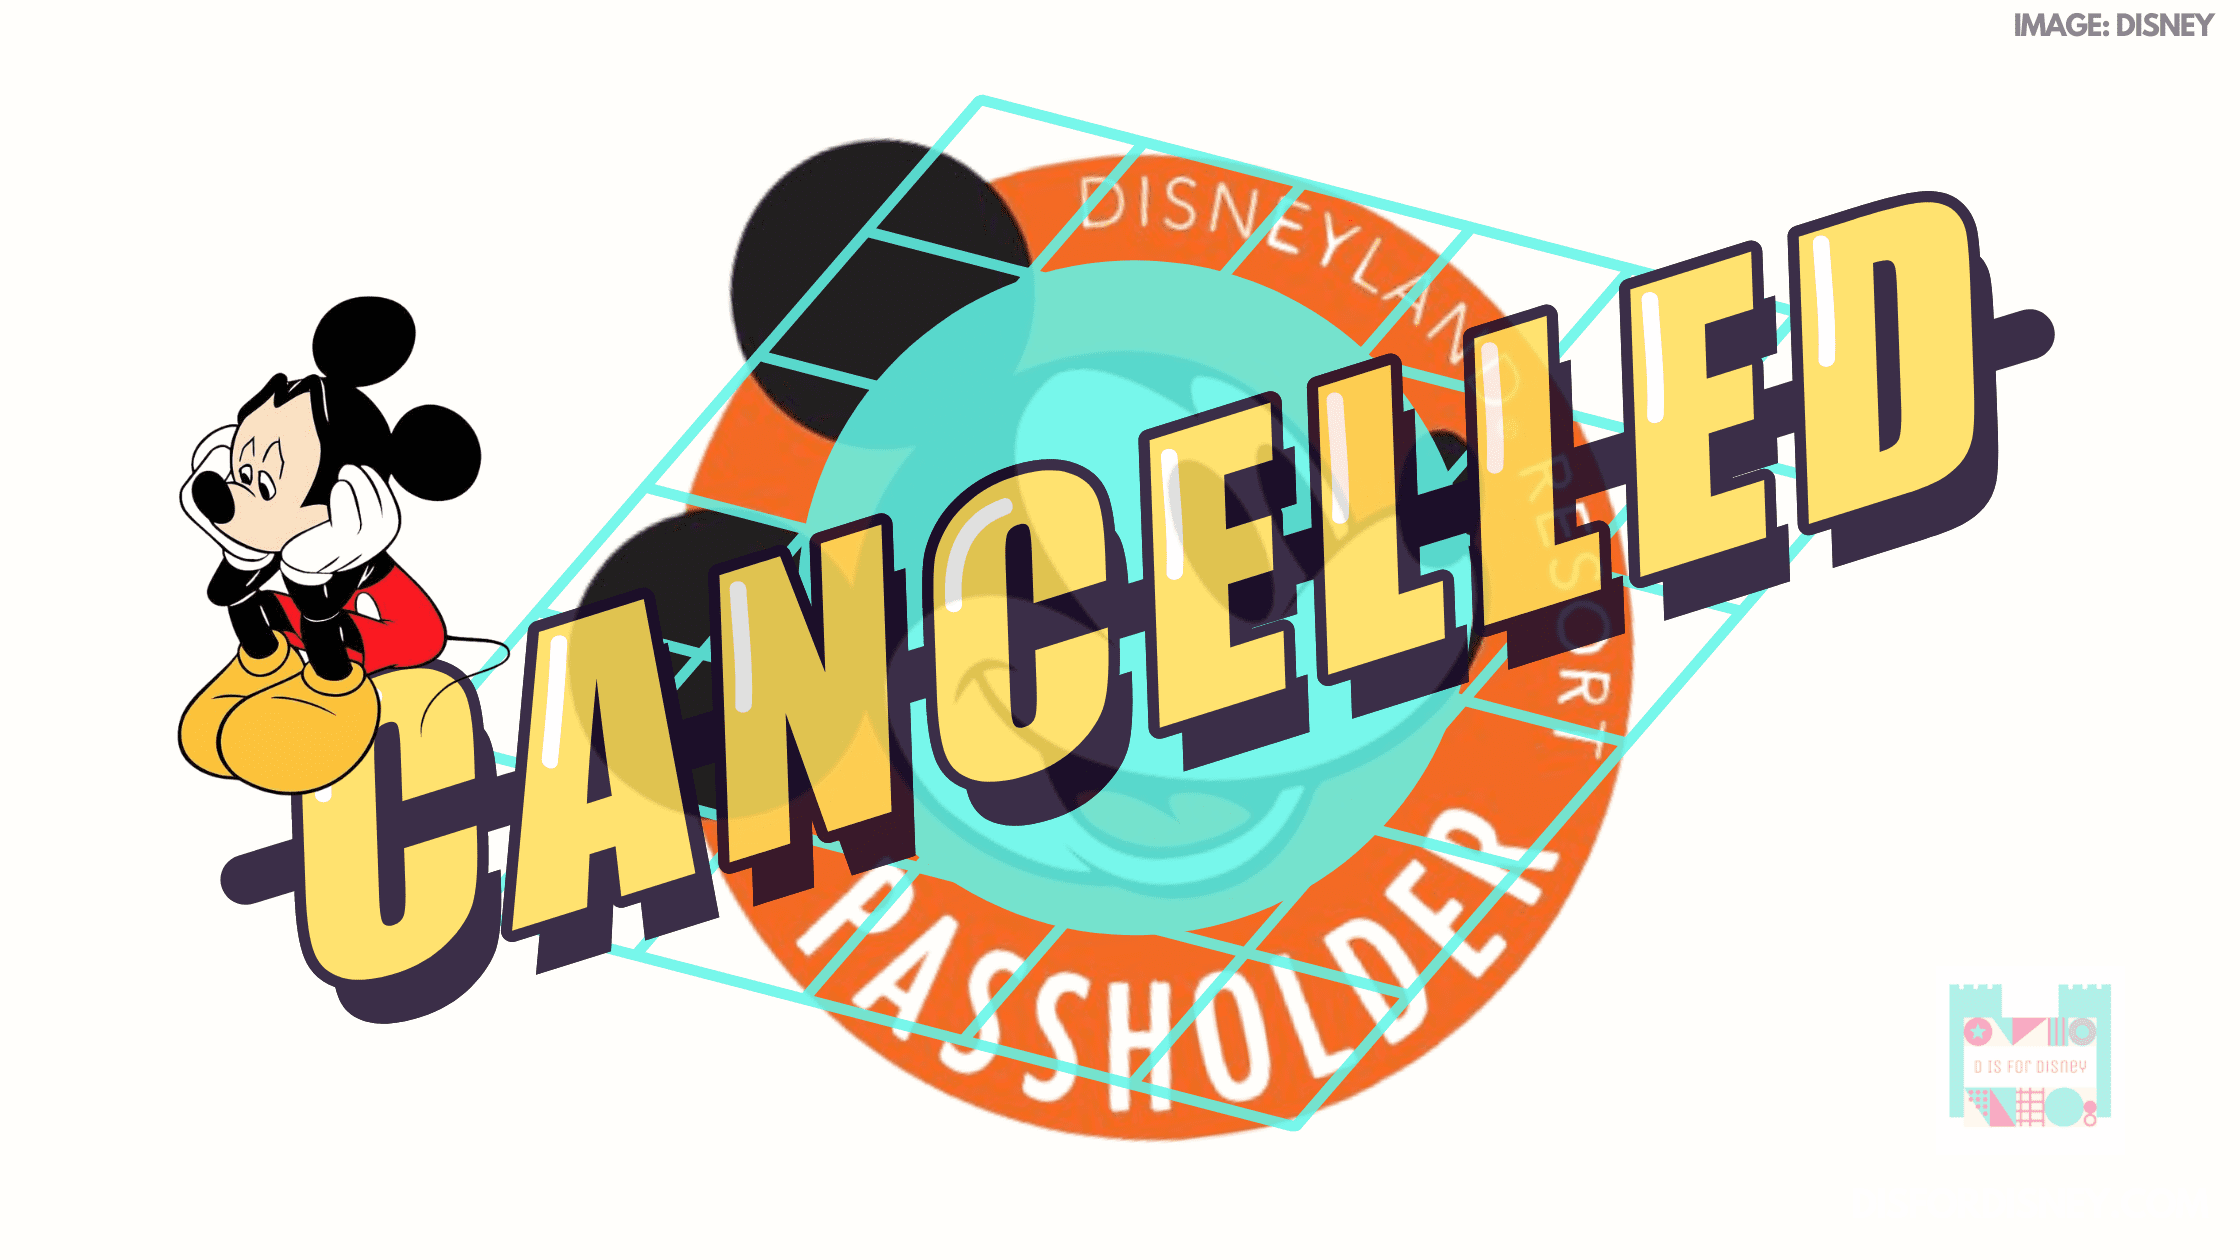 Disneyland Annual Passholder Passport Cancelled 2021